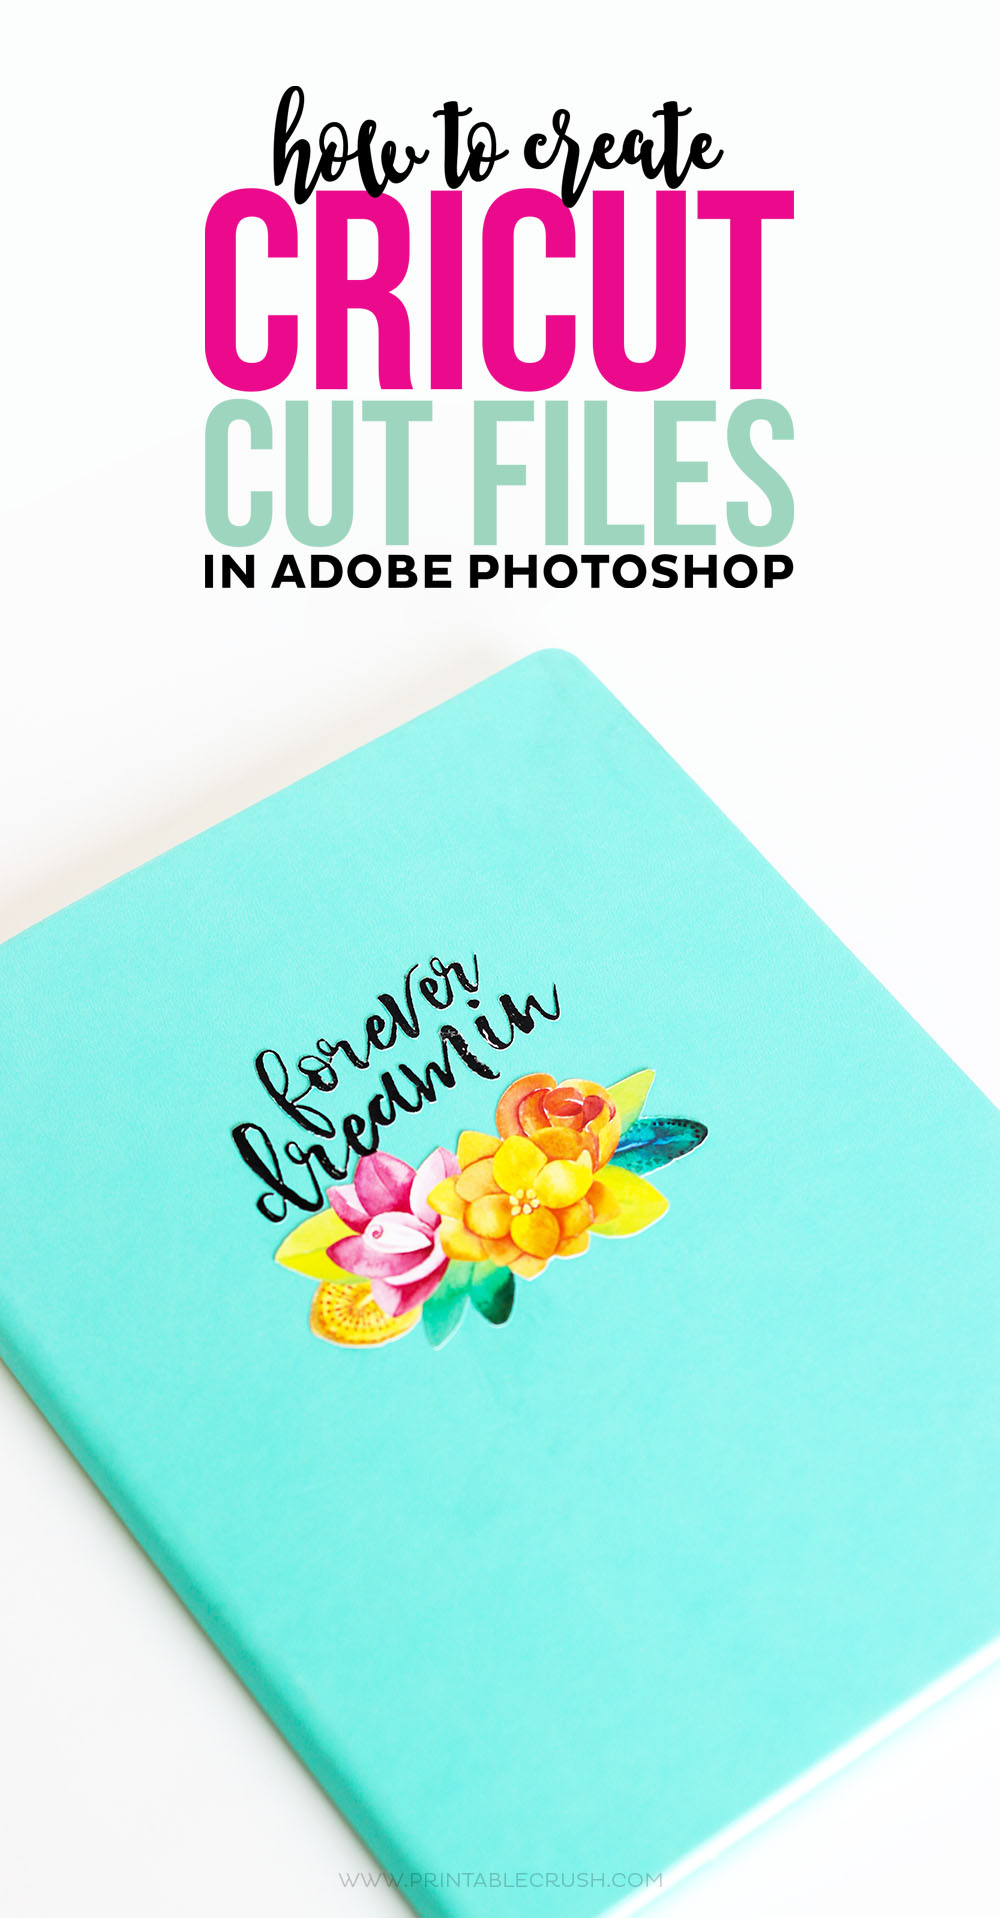 How to use photoshop to make this teal book with flowers and words on it